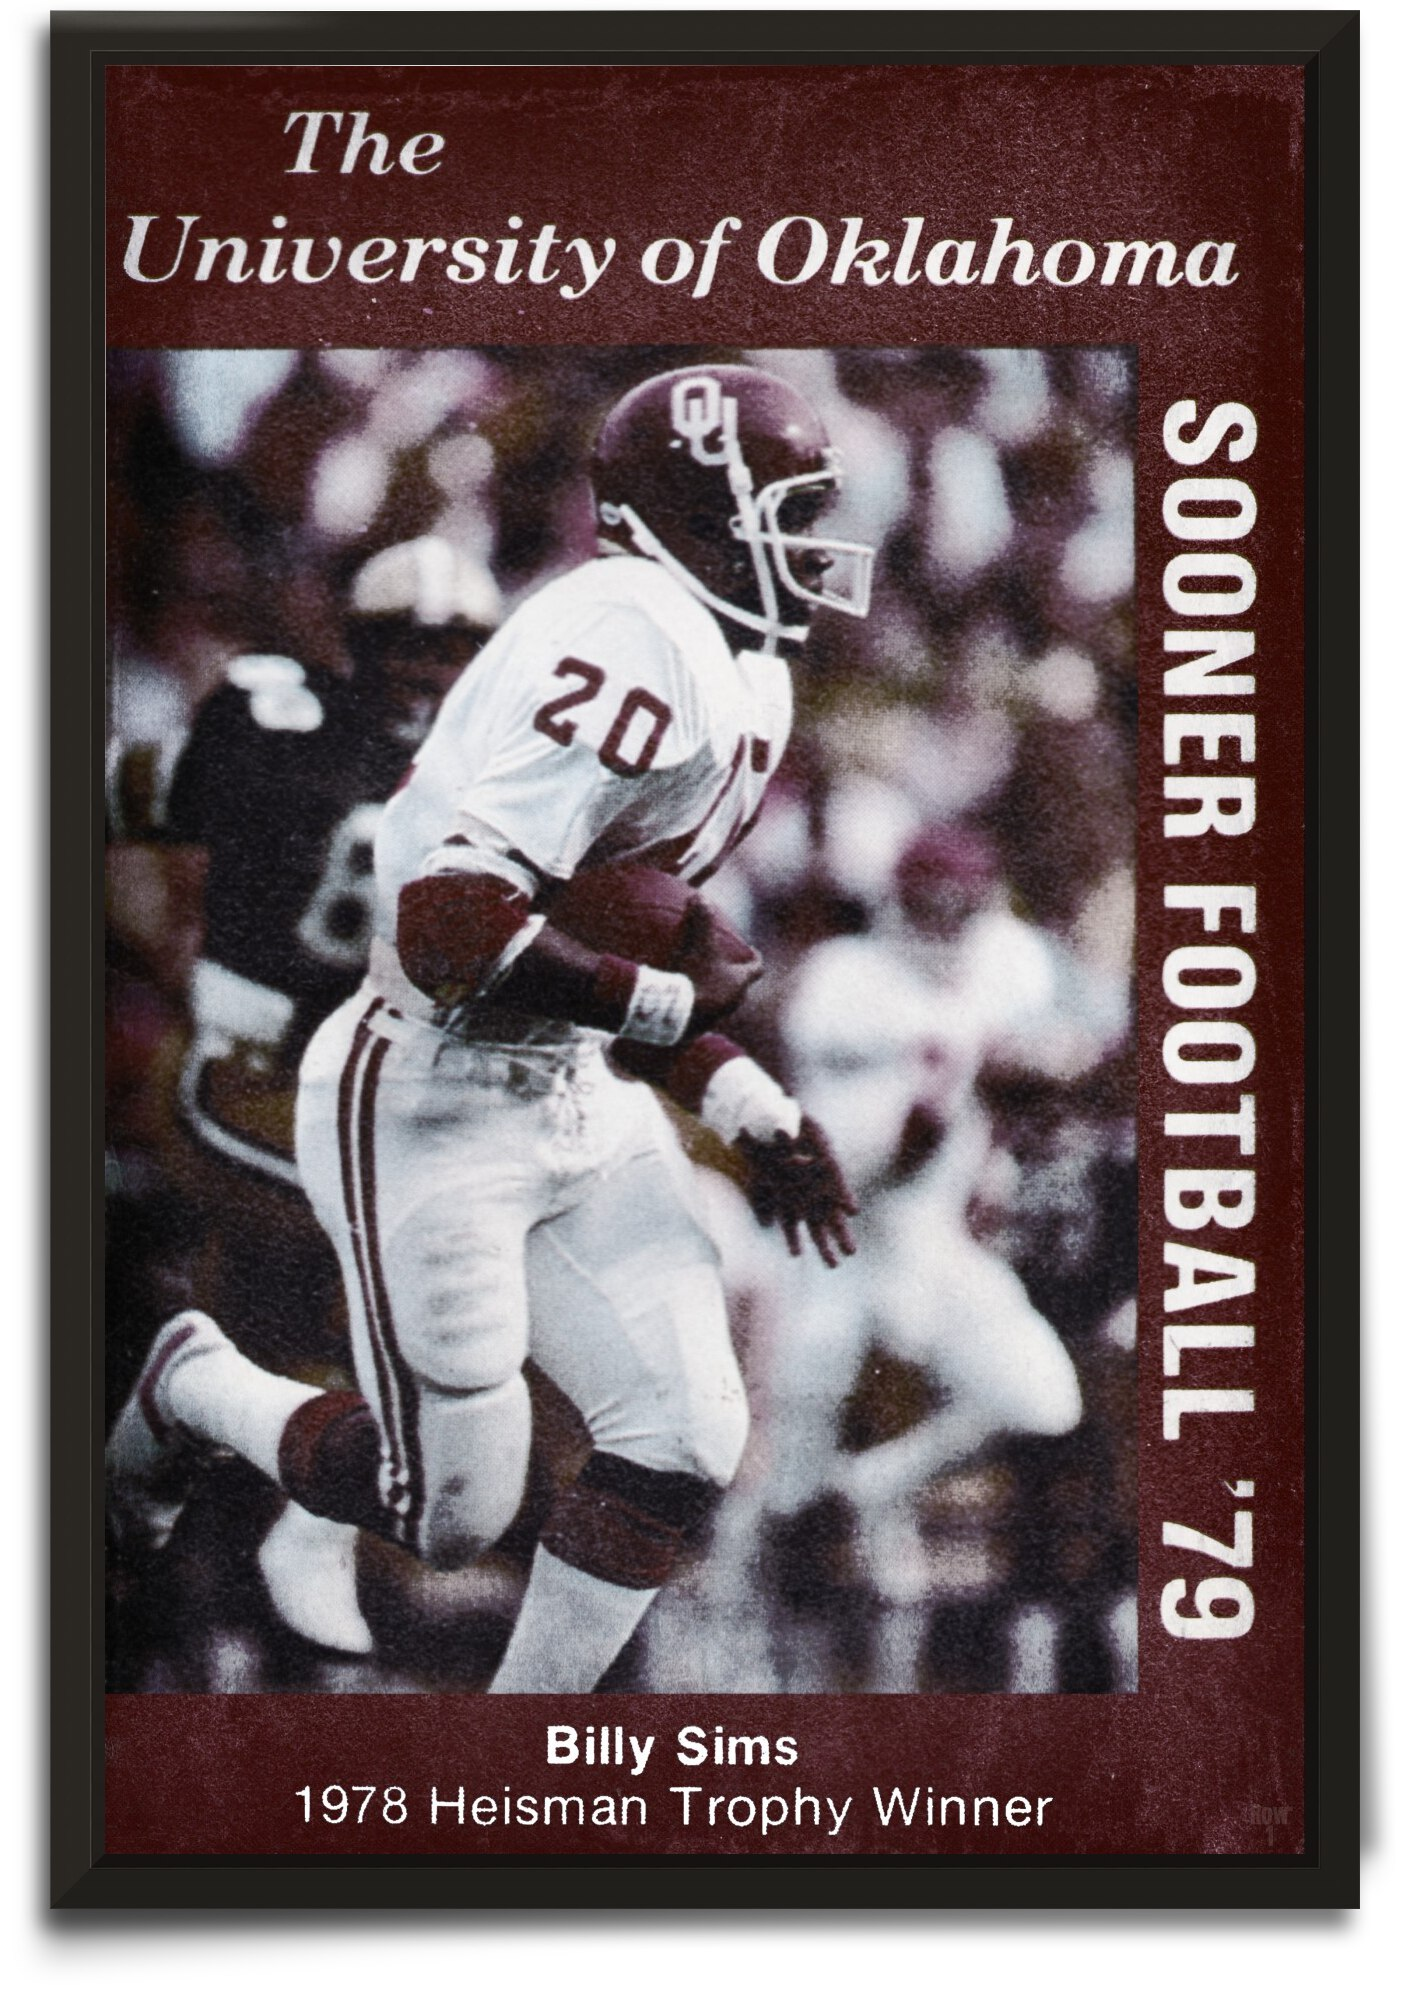 1979 billy sims oklahoma sooners football poster by Row One Brand